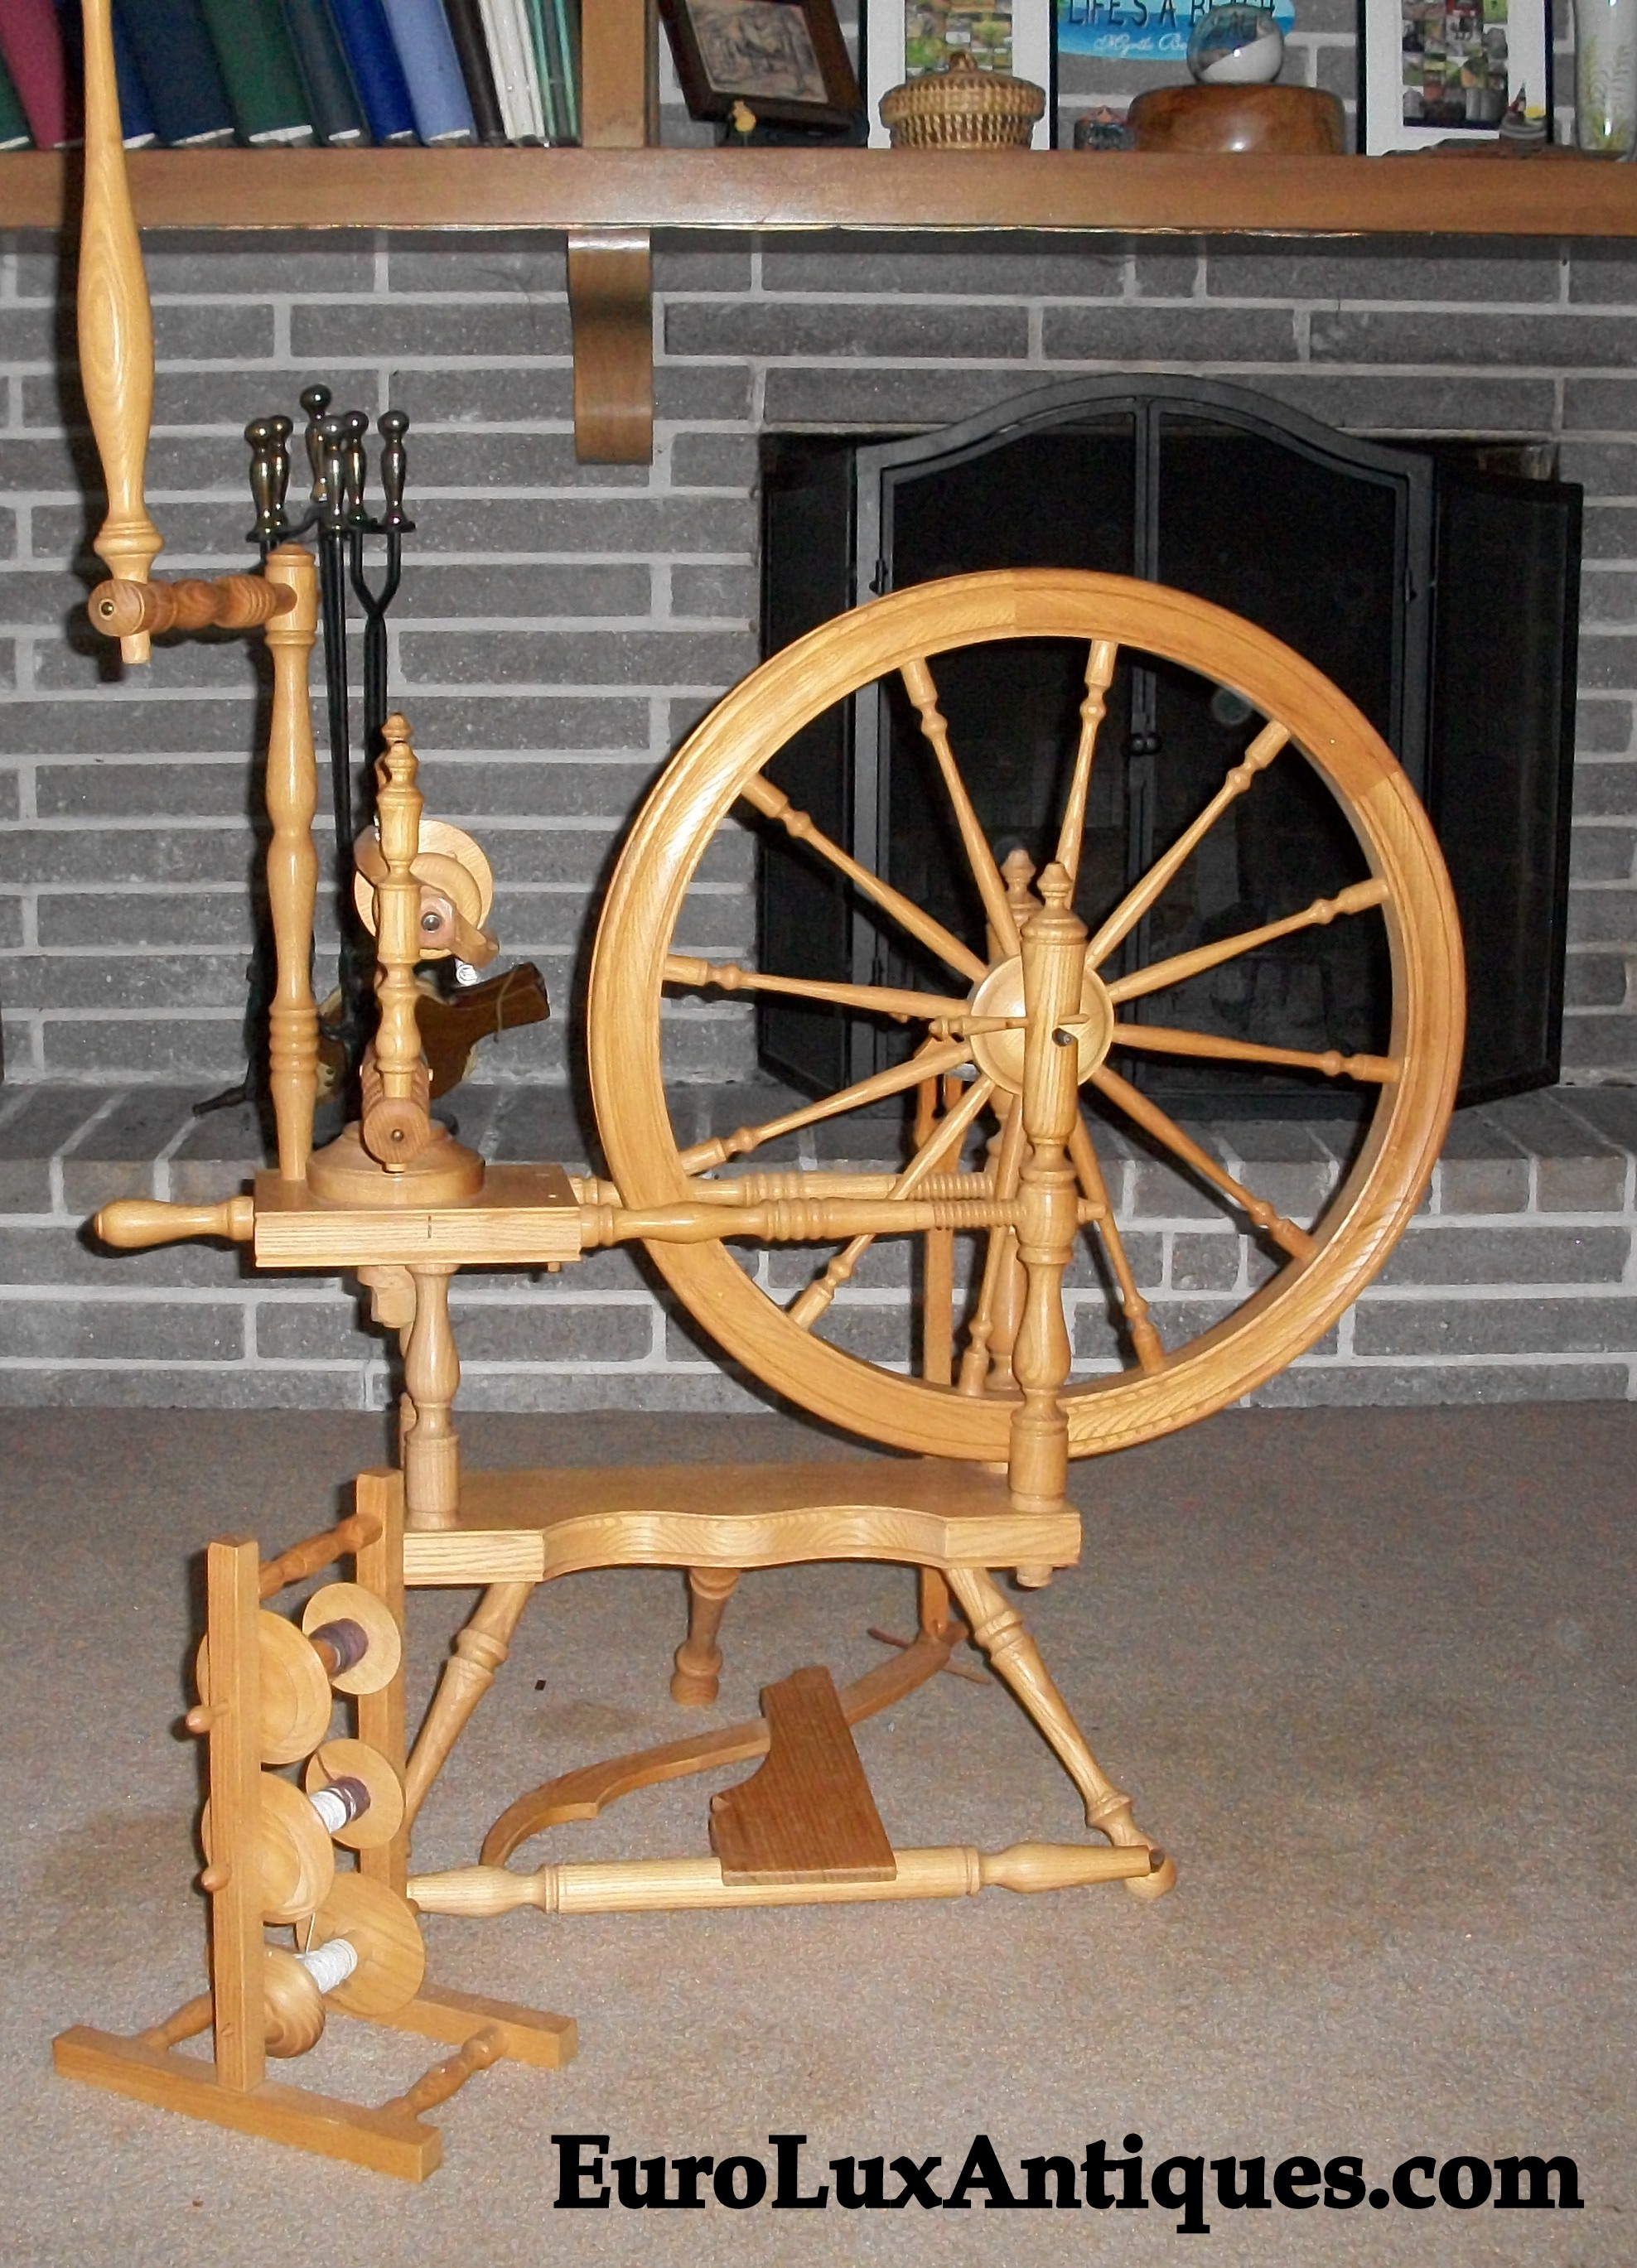 Vintage Norwegian Thy Roc  spinning wheel, circa 1980.